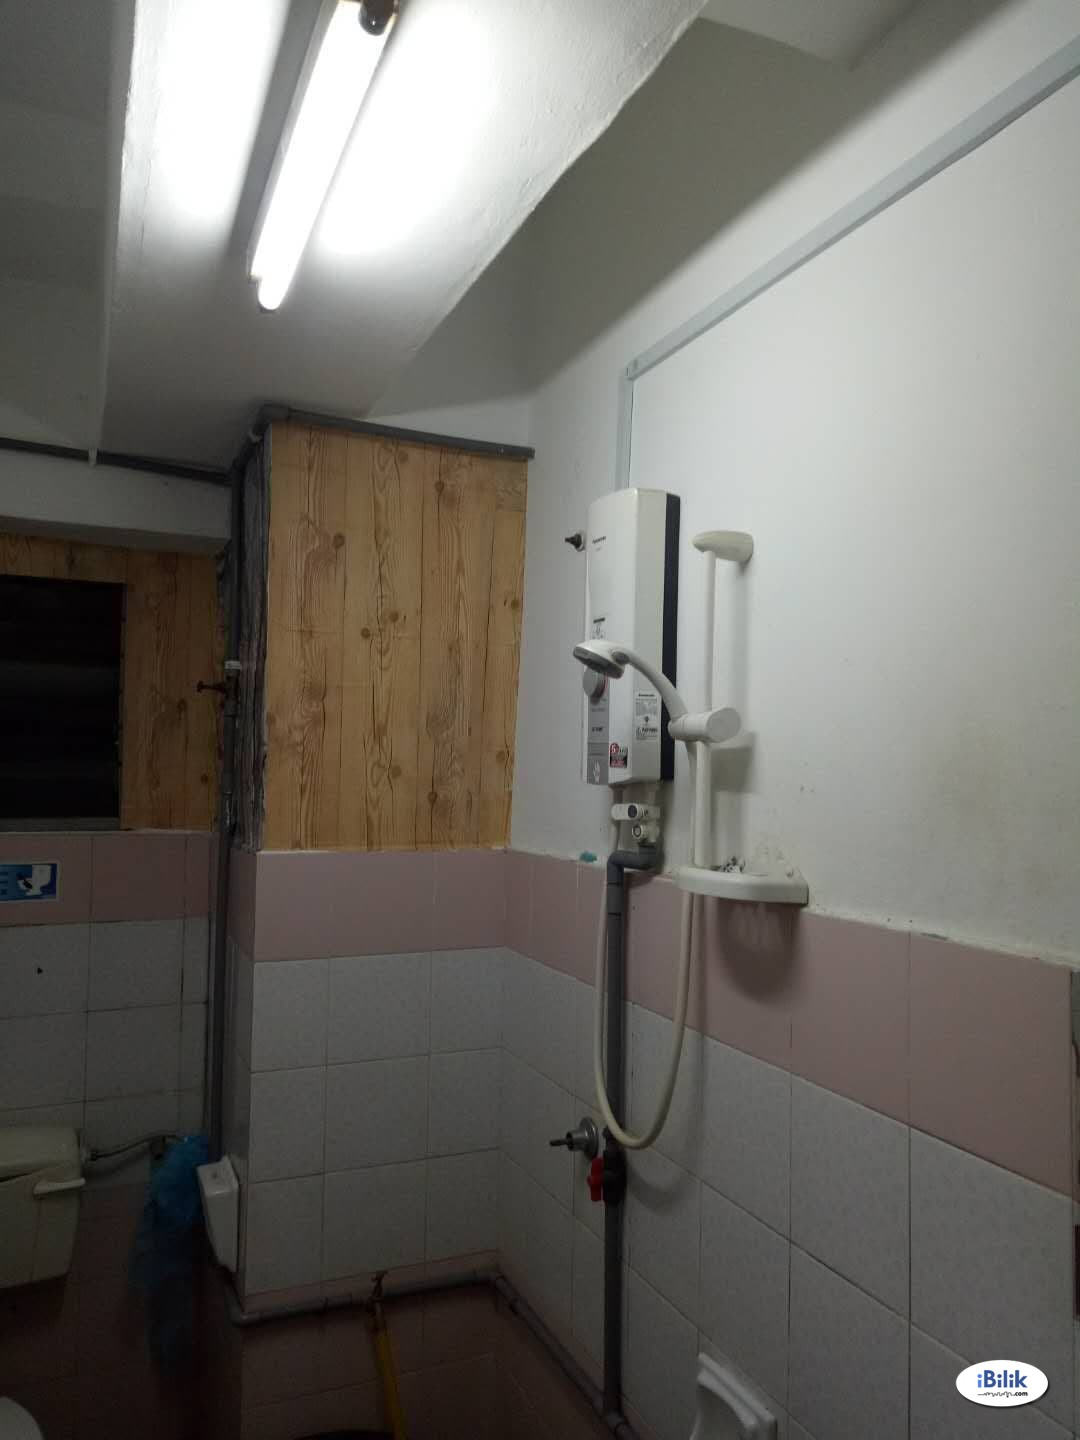 Single Room At Pandan Perdana ( Bus Connecting To Sunway Velocity & Hospital Ampang)